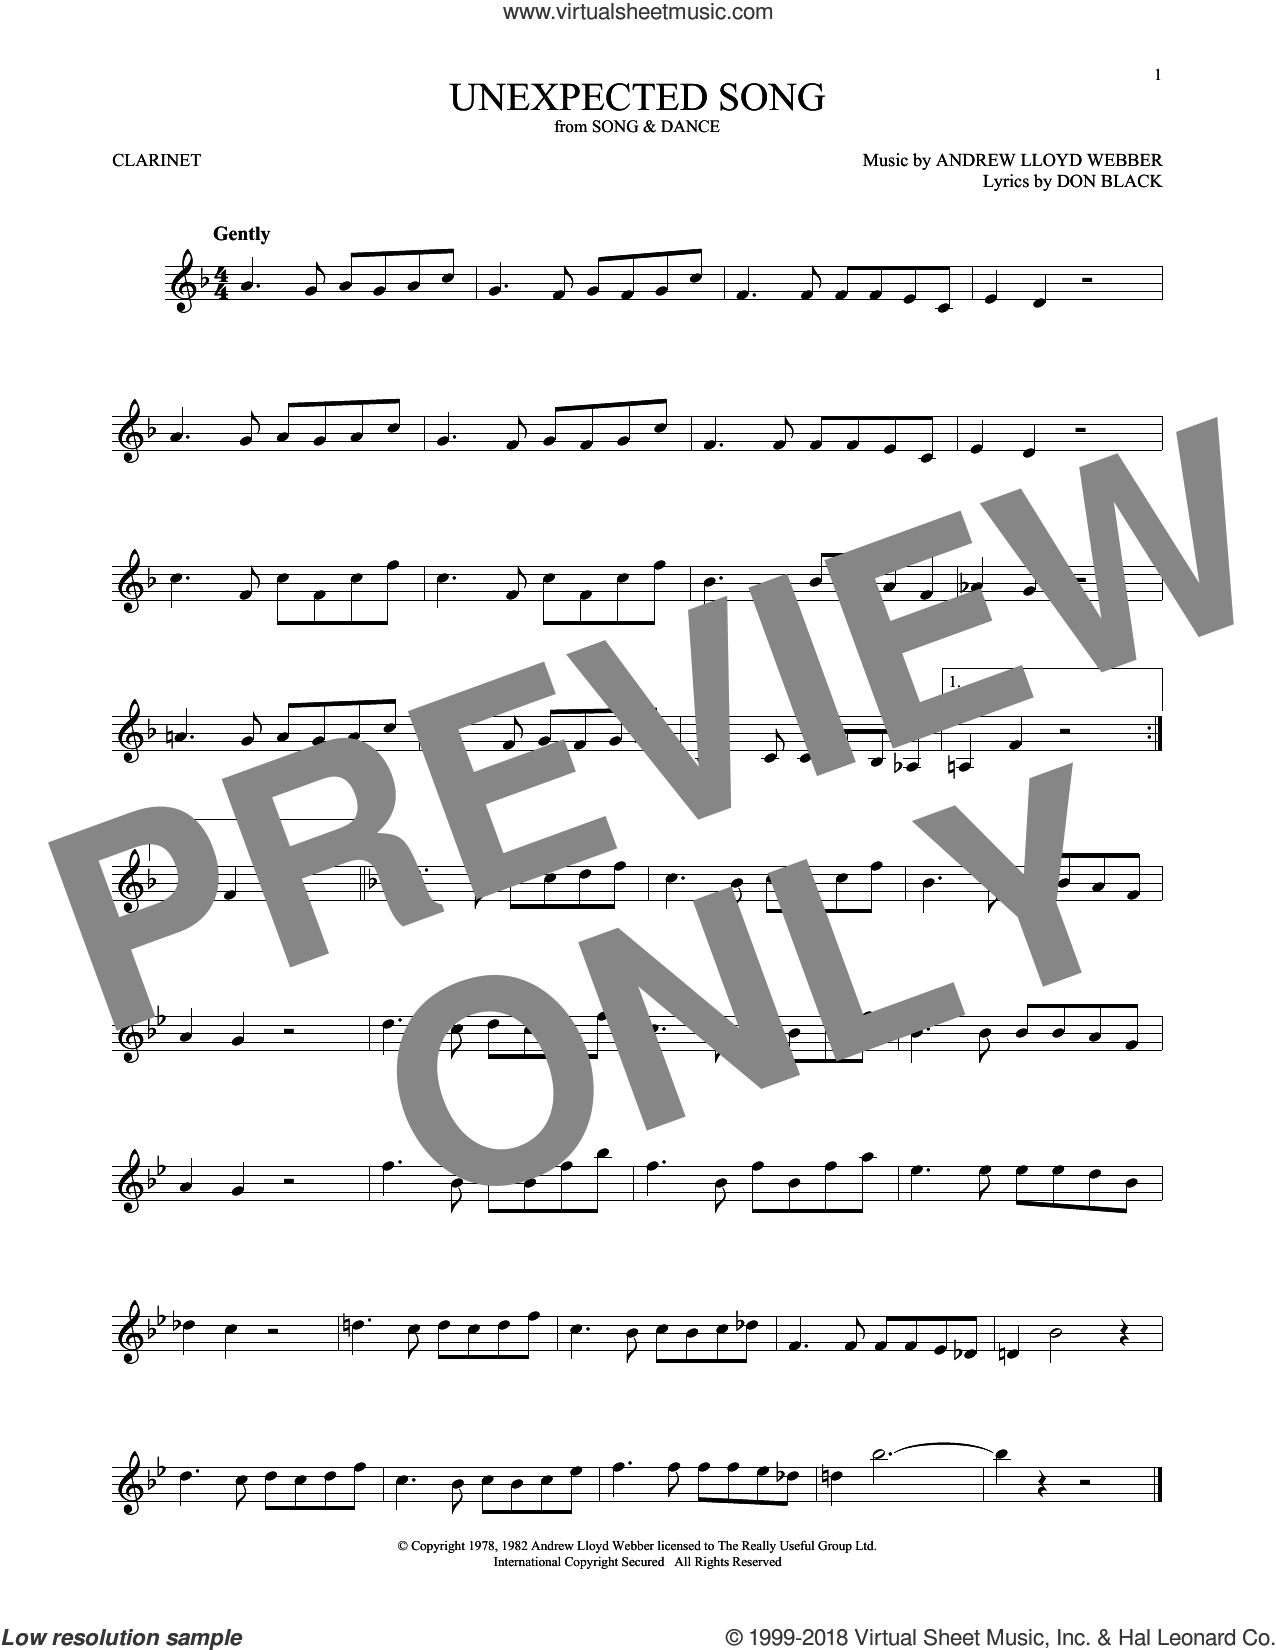 Unexpected Song (from Song and Dance) sheet music for clarinet solo by Andrew Lloyd Webber, Bernadette Peters, Michael Crawford and Don Black, intermediate skill level